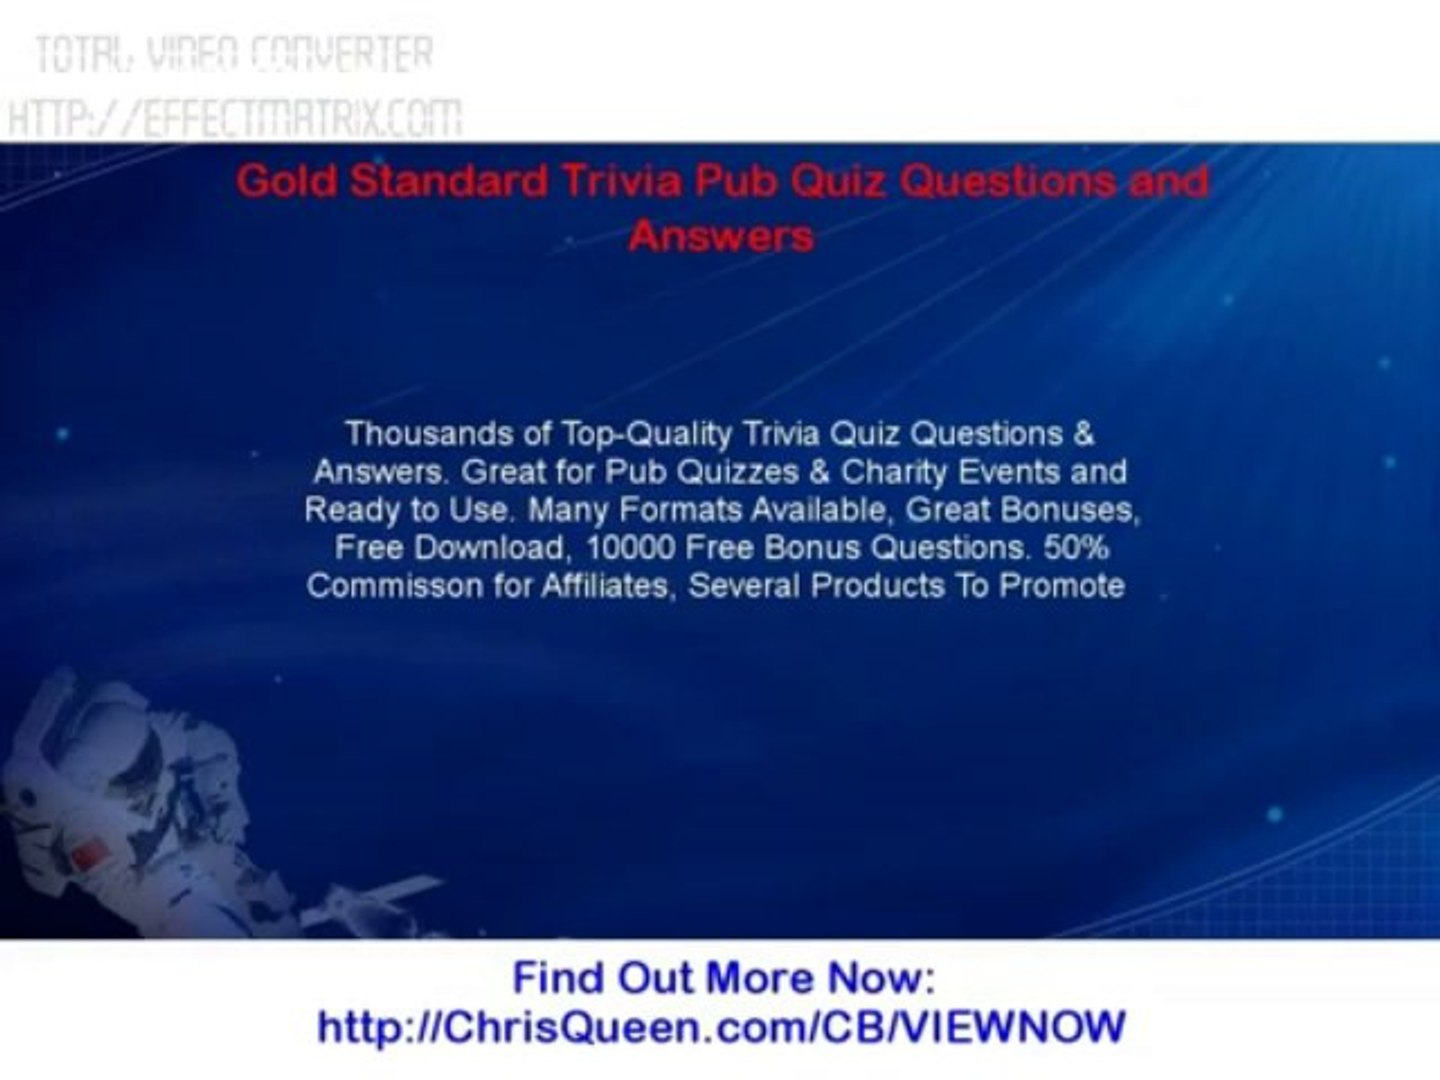 Gold Standard Trivia Pub Quiz Questions And Answers